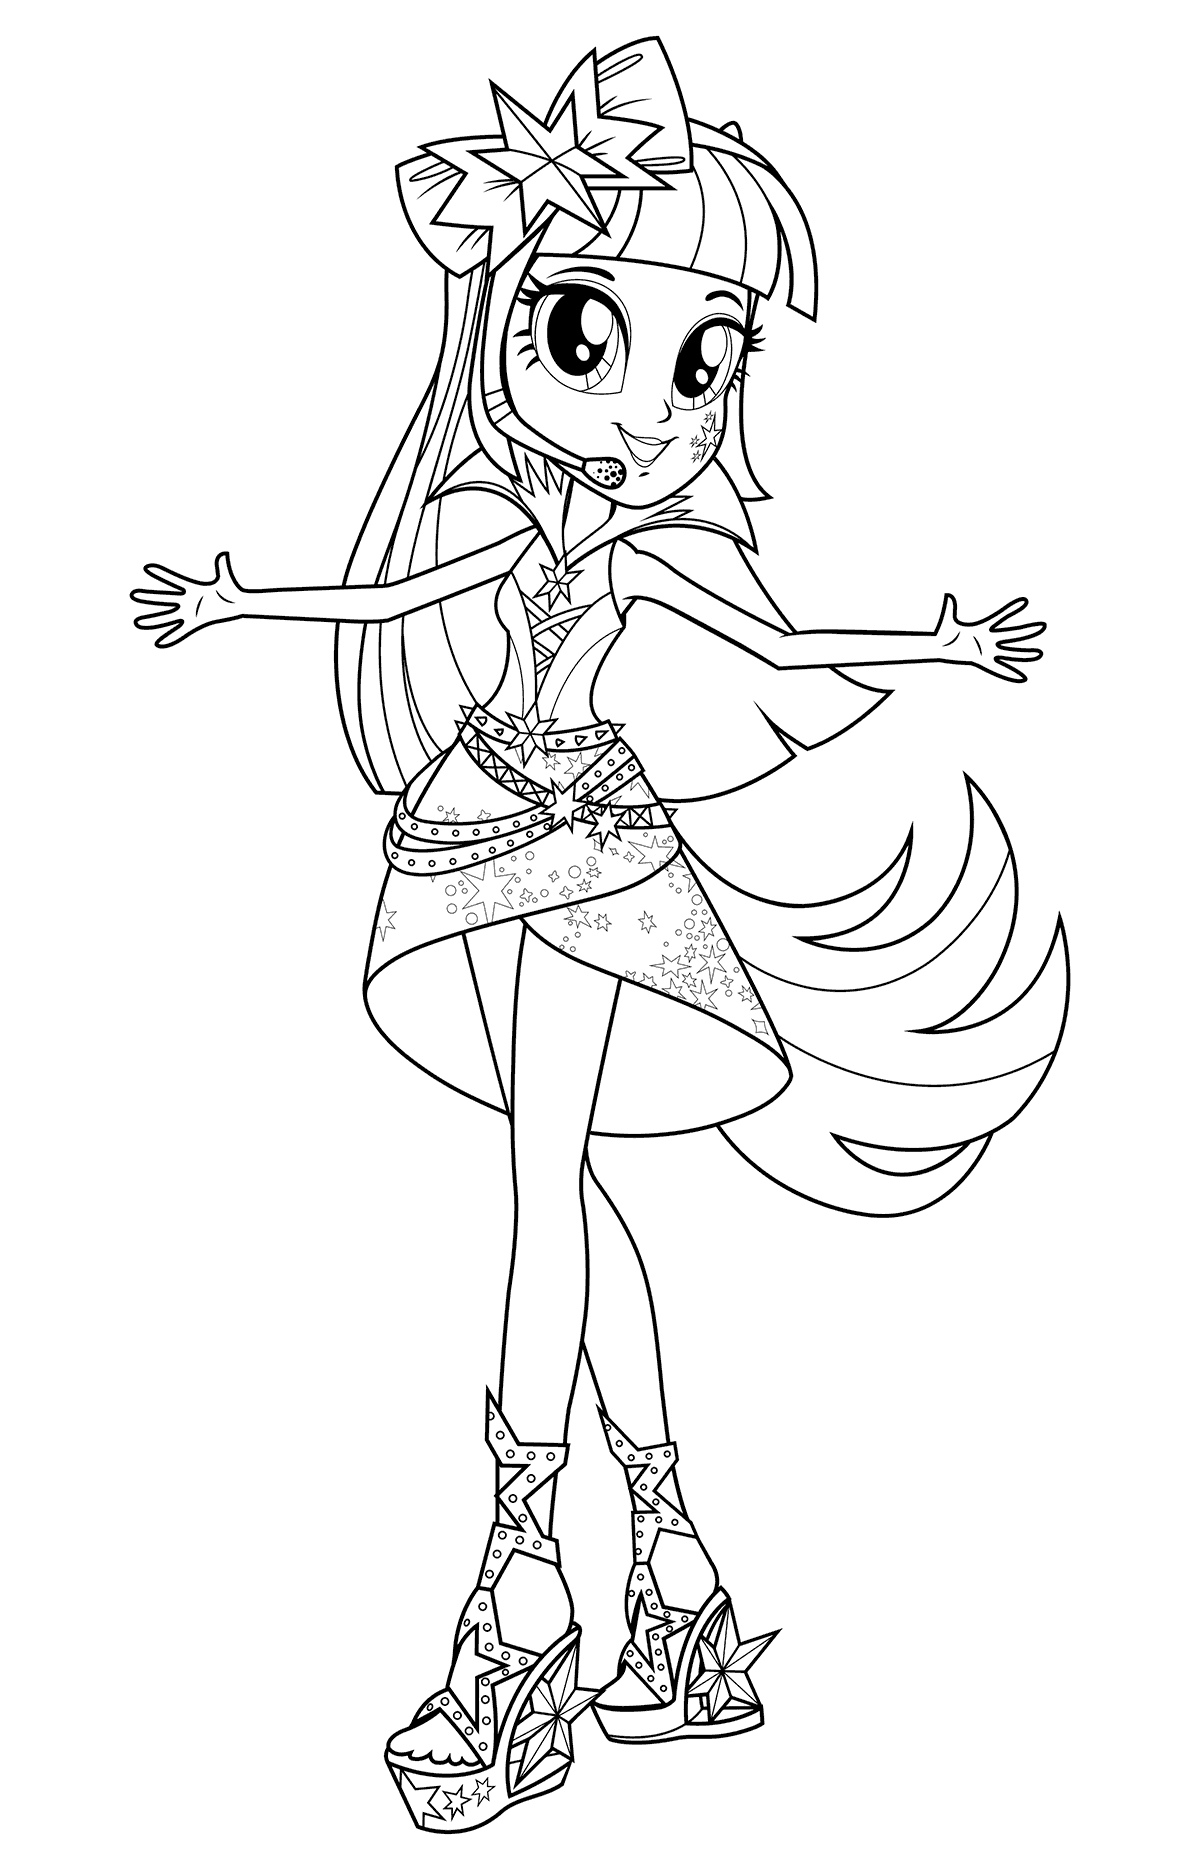 Pin By Veronica Ojopi On Para Colorear My Little Pony Coloring Cute Coloring Pages My Little Pony Twilight